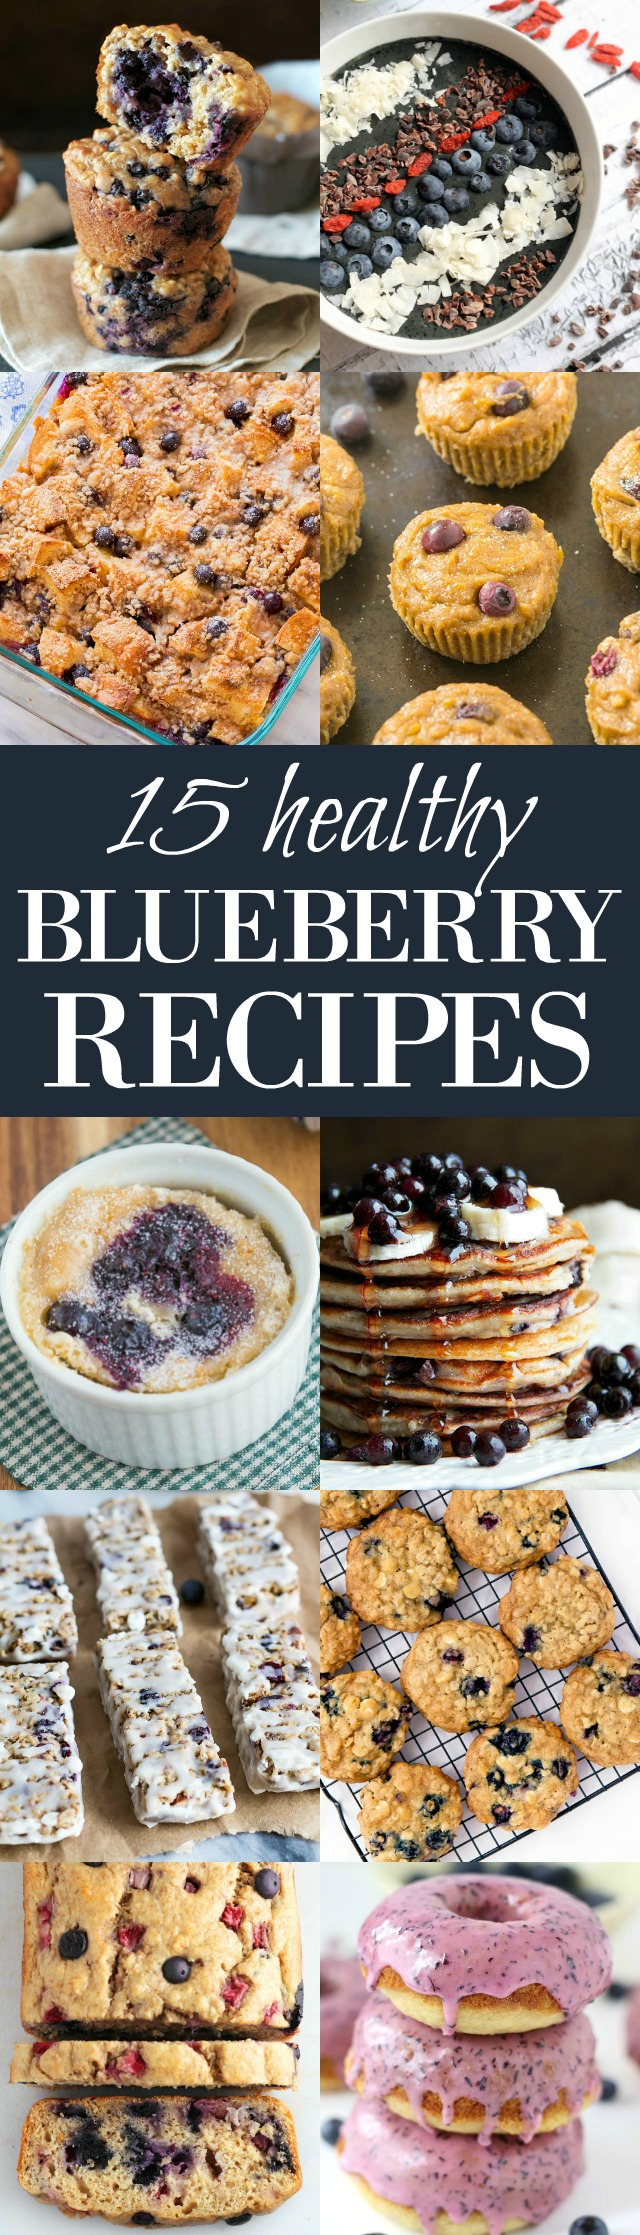 15 Healthy Blueberry Recipes - perfect for breakfasts and snacks! | runningwithspoons.com